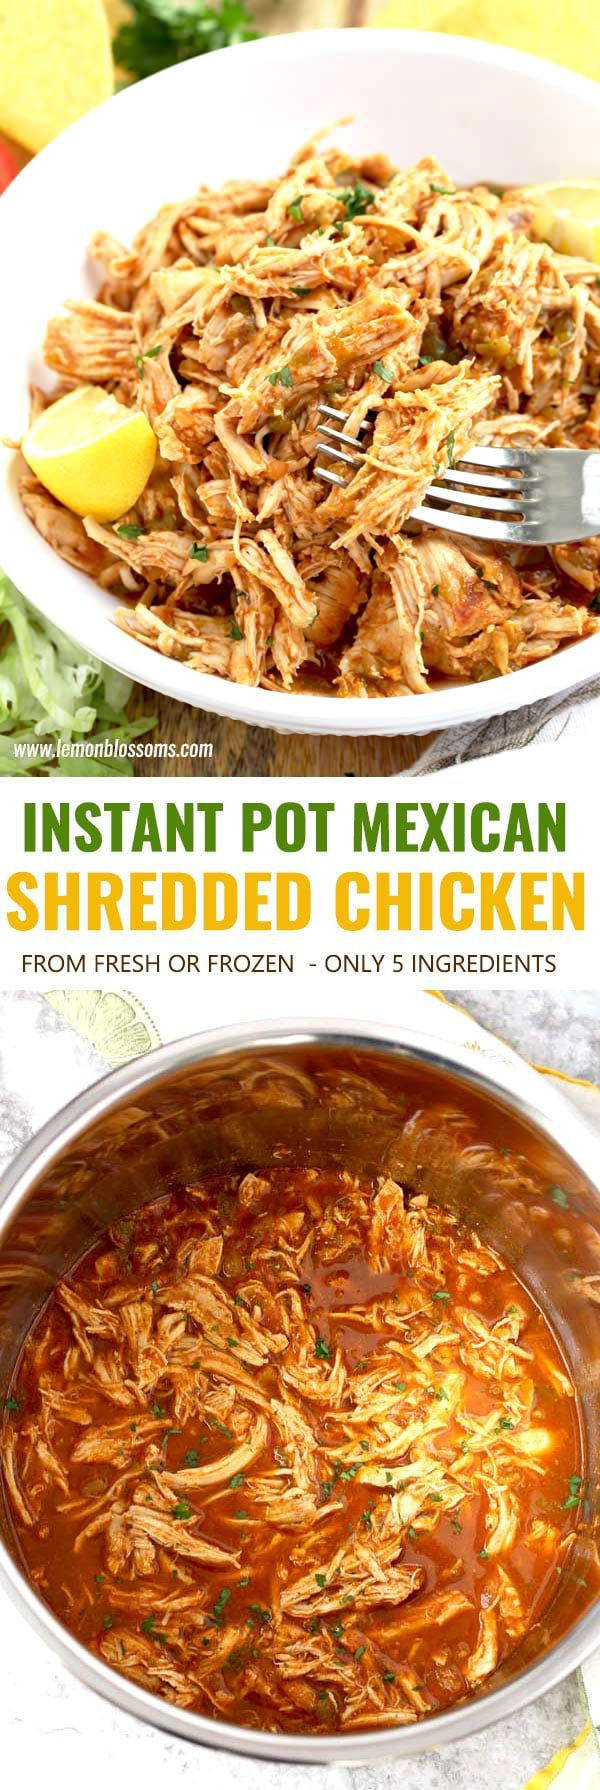 Instant Pot Mexican Shredded Chicken #instantpotchickenrecipes